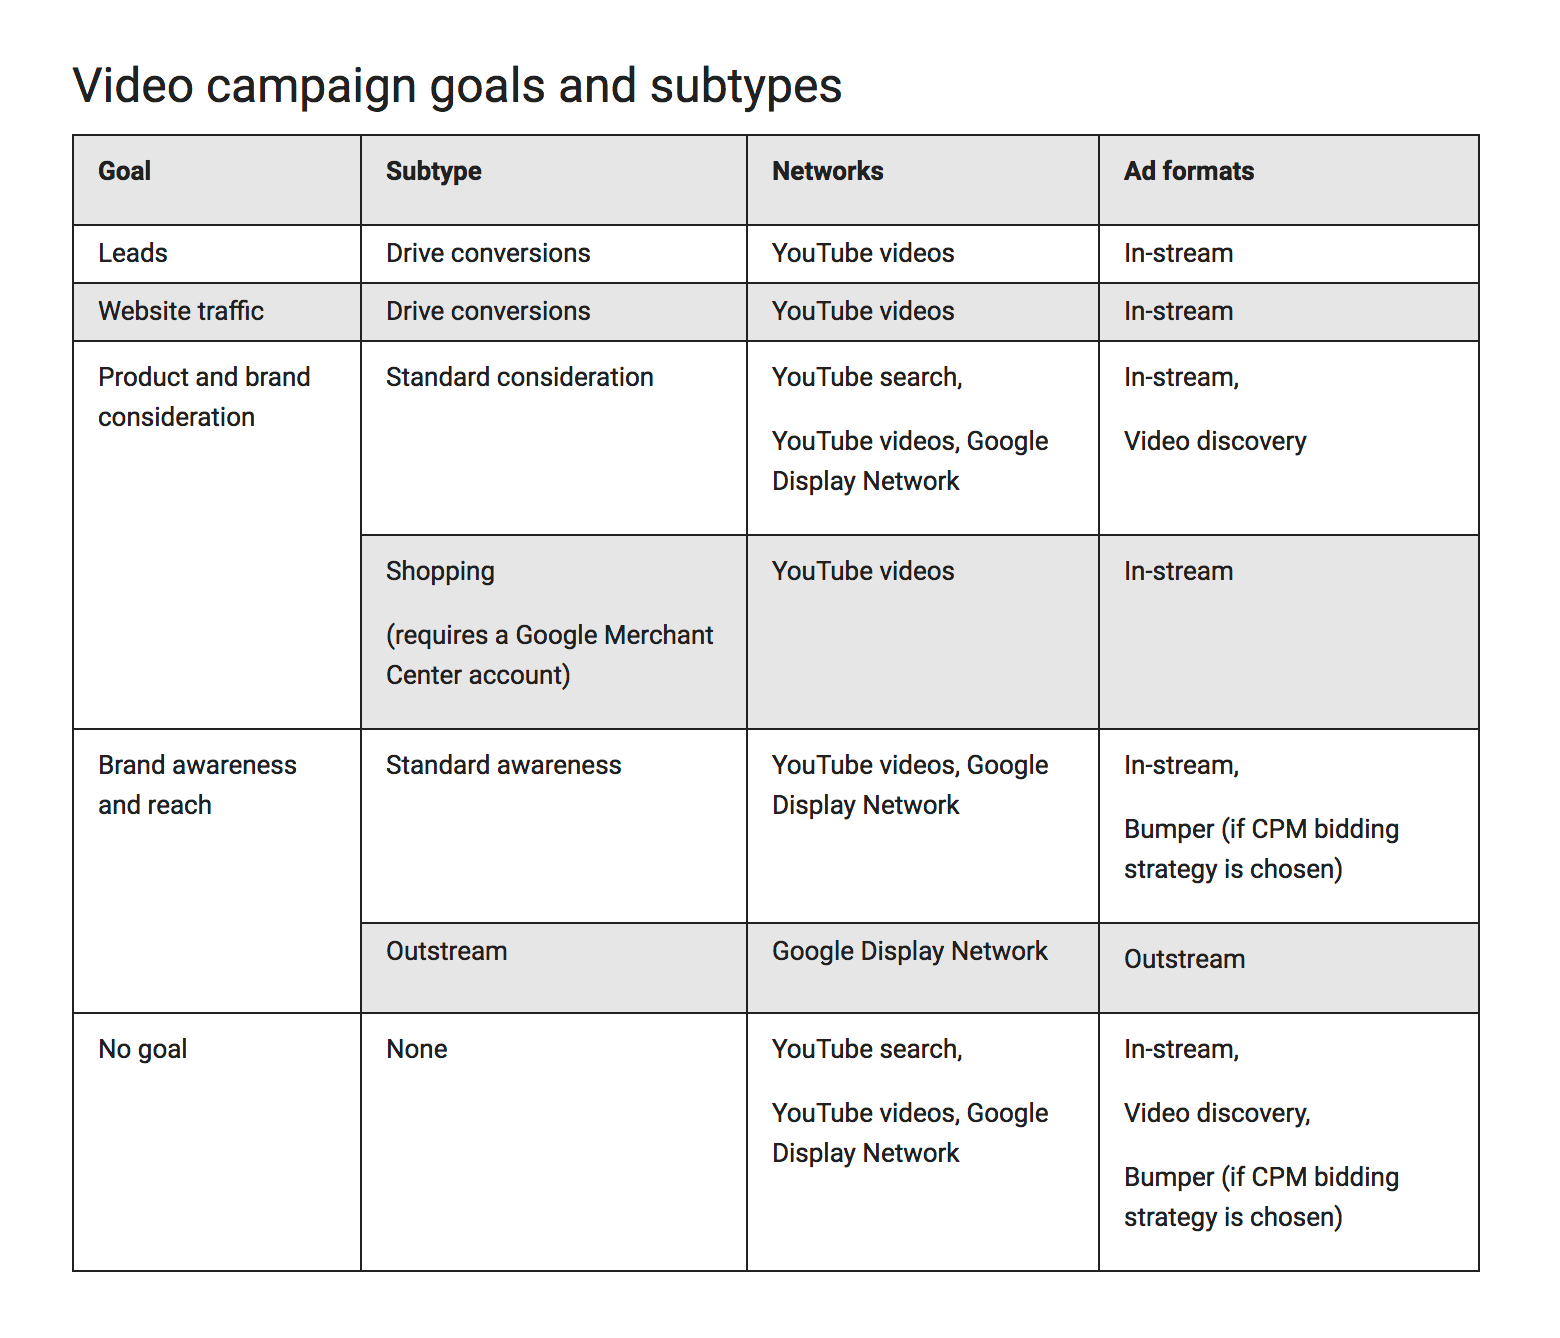 Video Campaign Goals and Subtypes